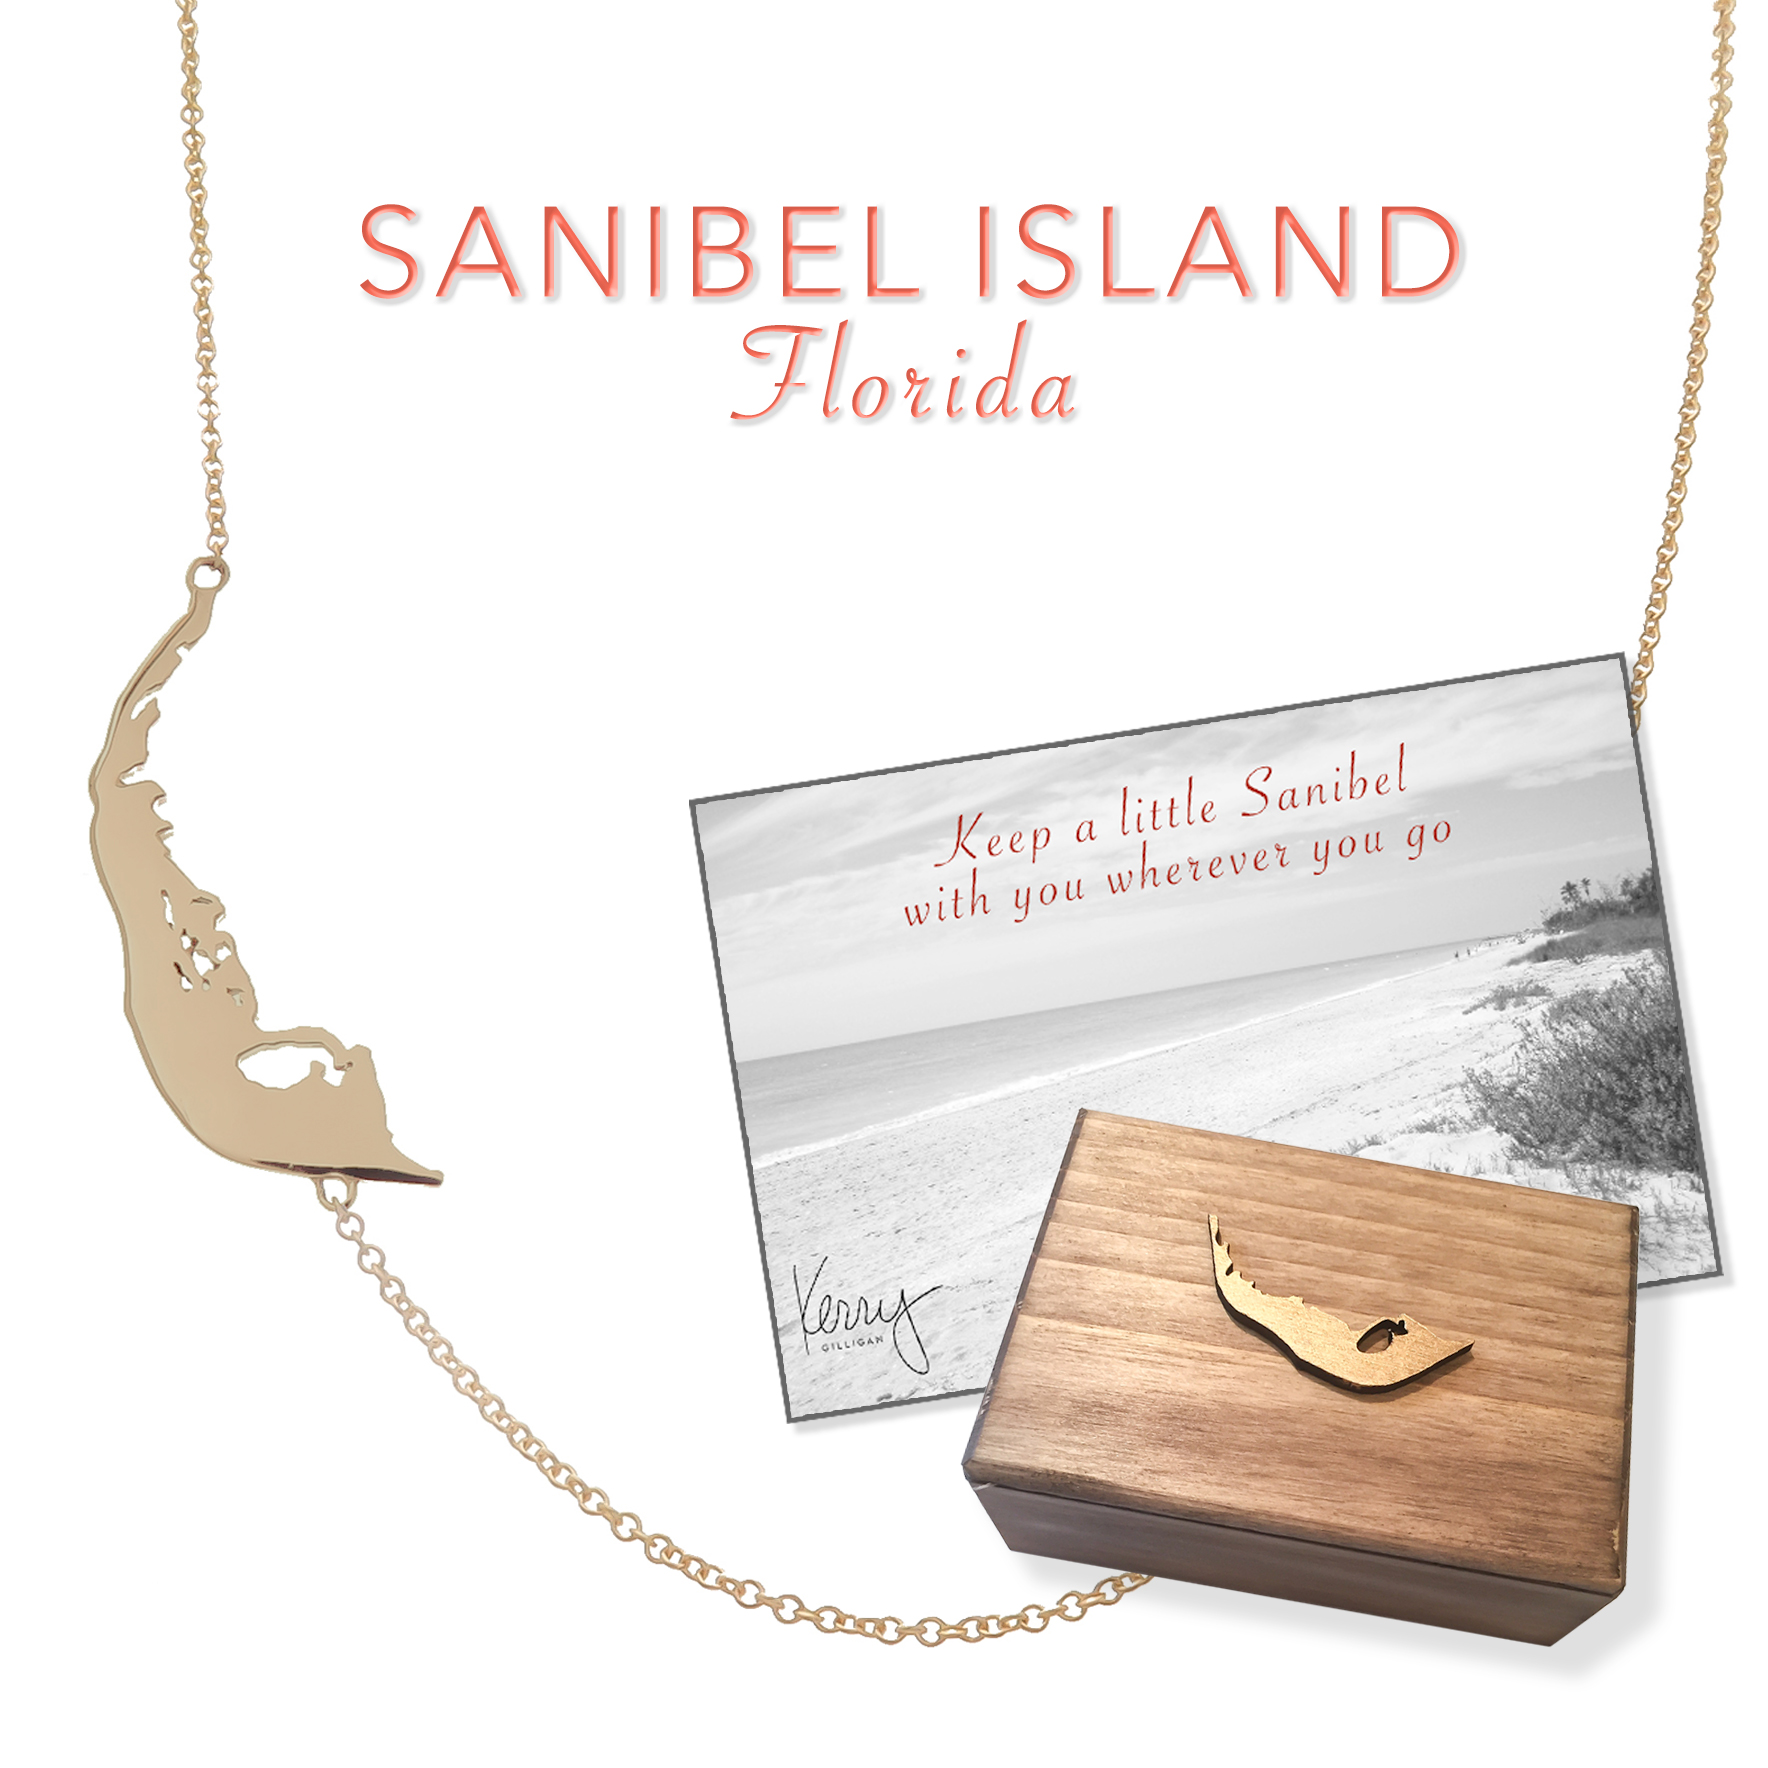 sanibel-on-the-map-jpg.jpg